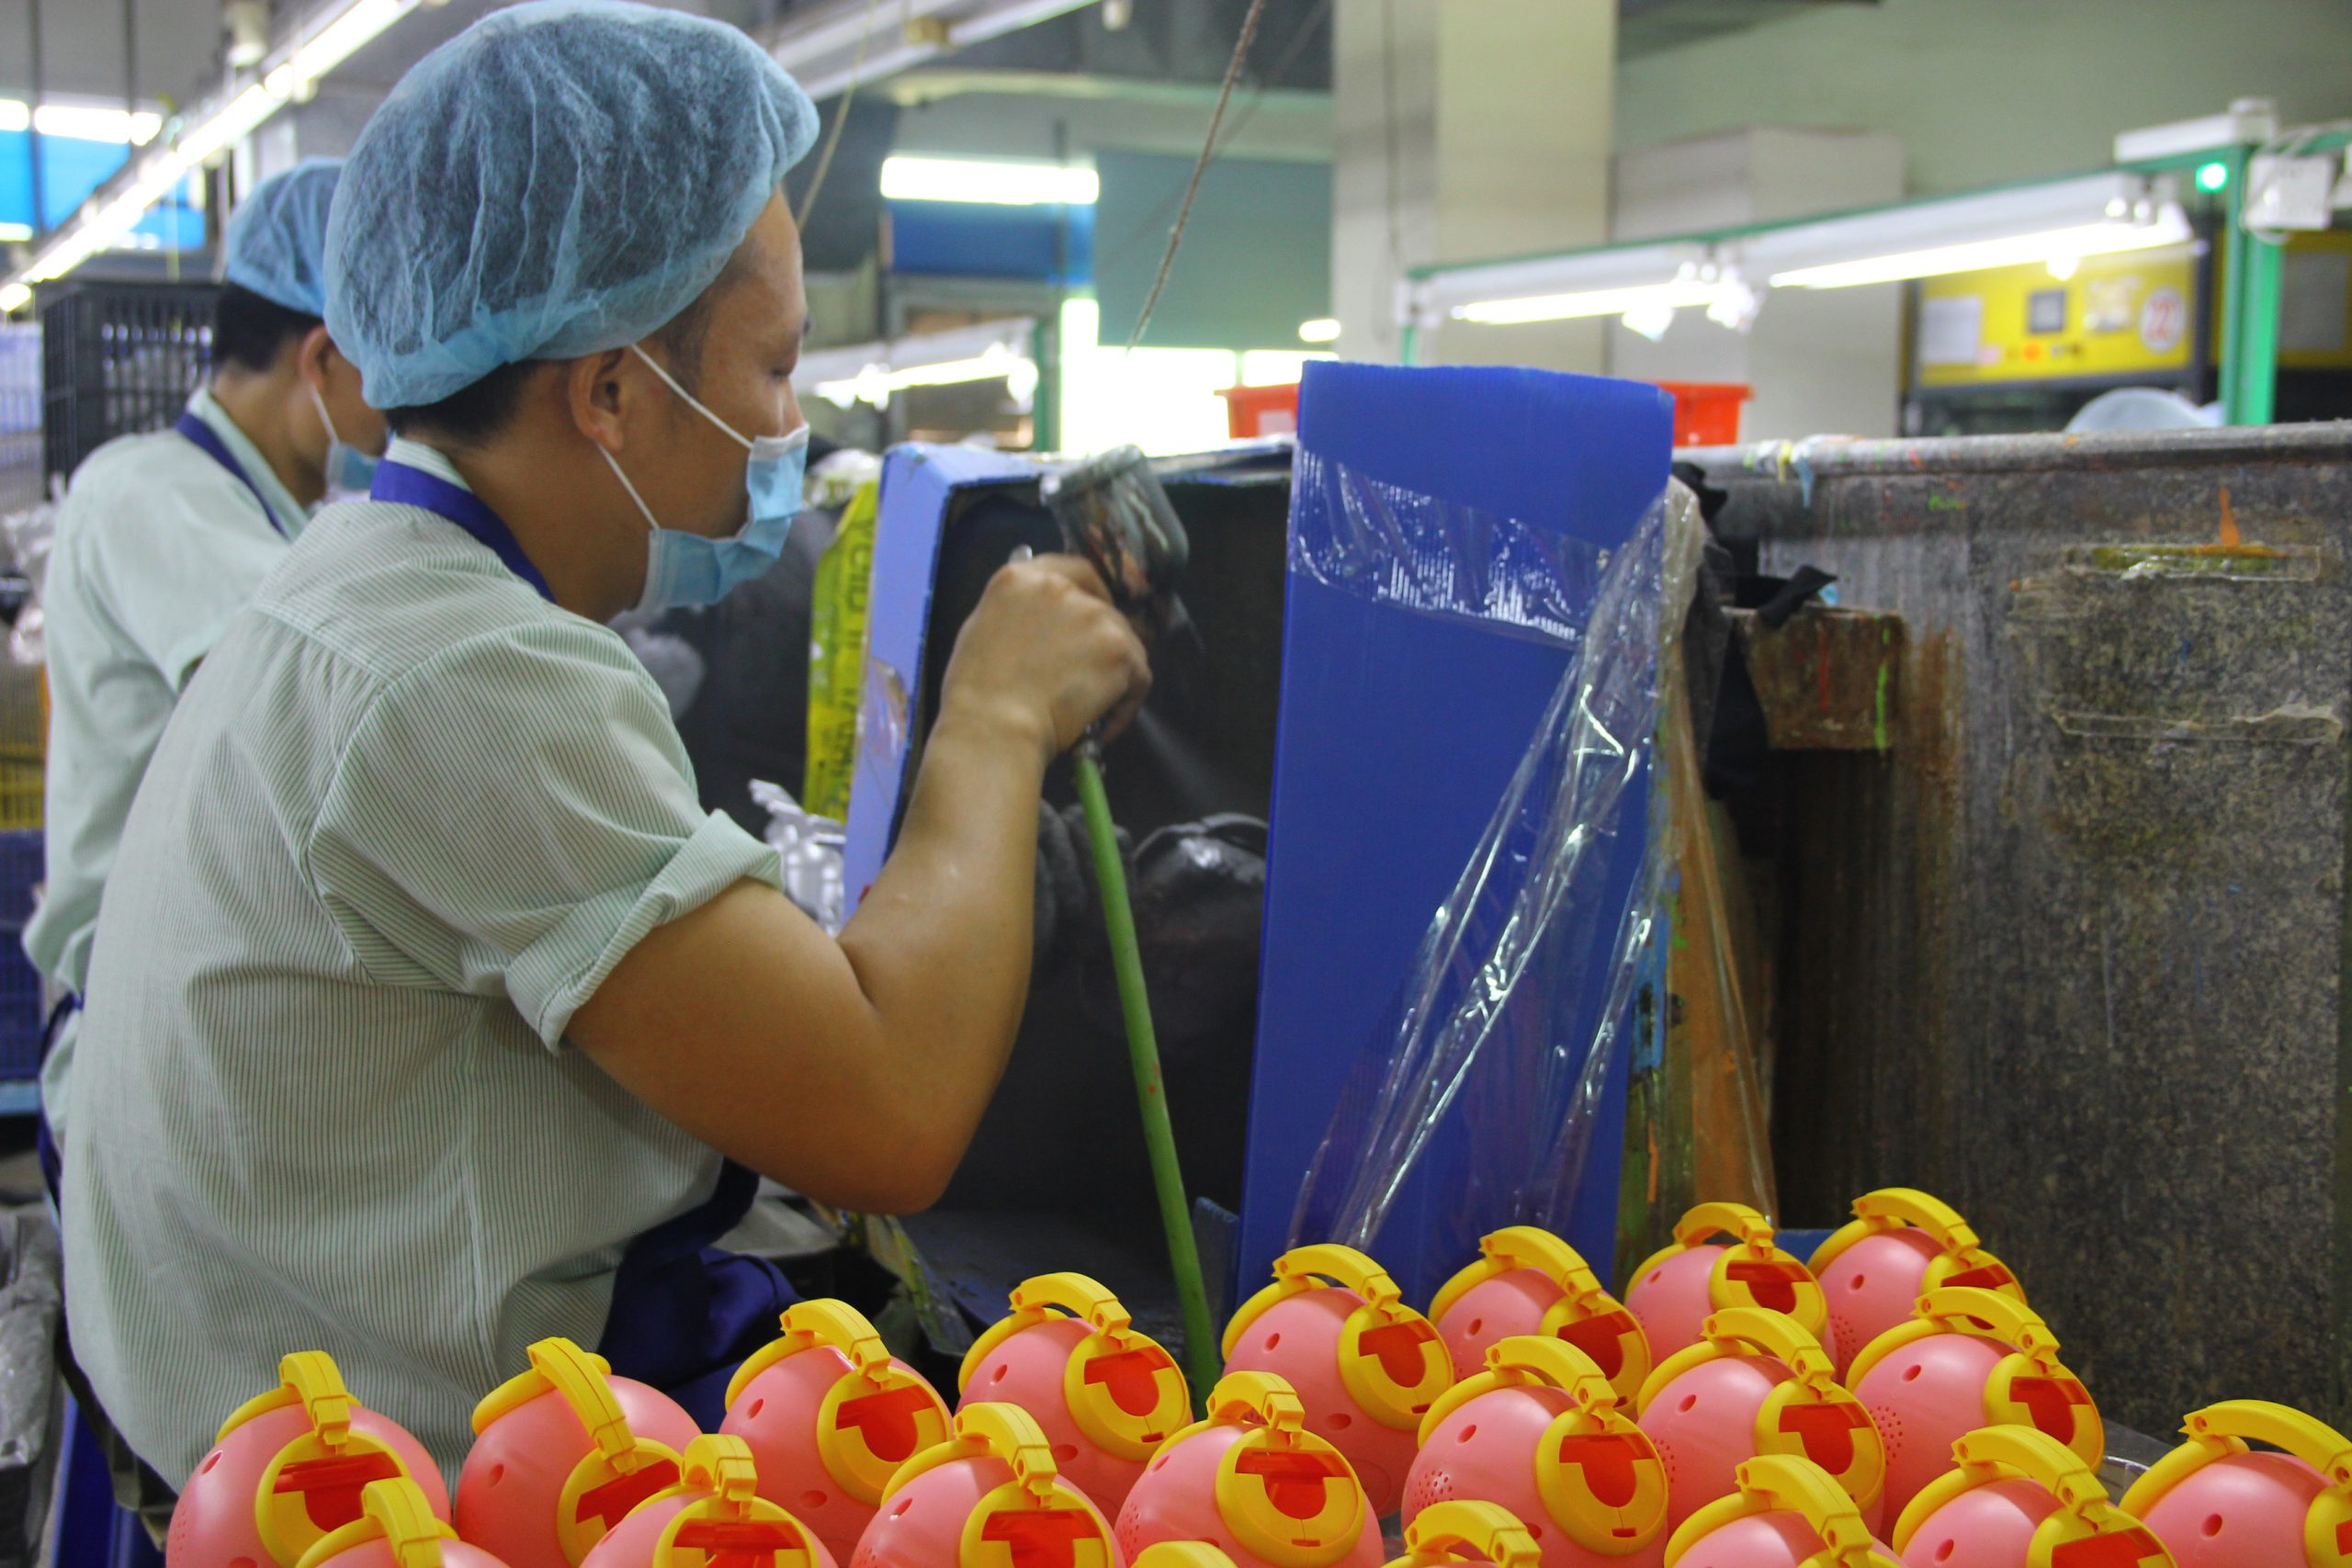 Spraying for toys and baby products manufacturing.